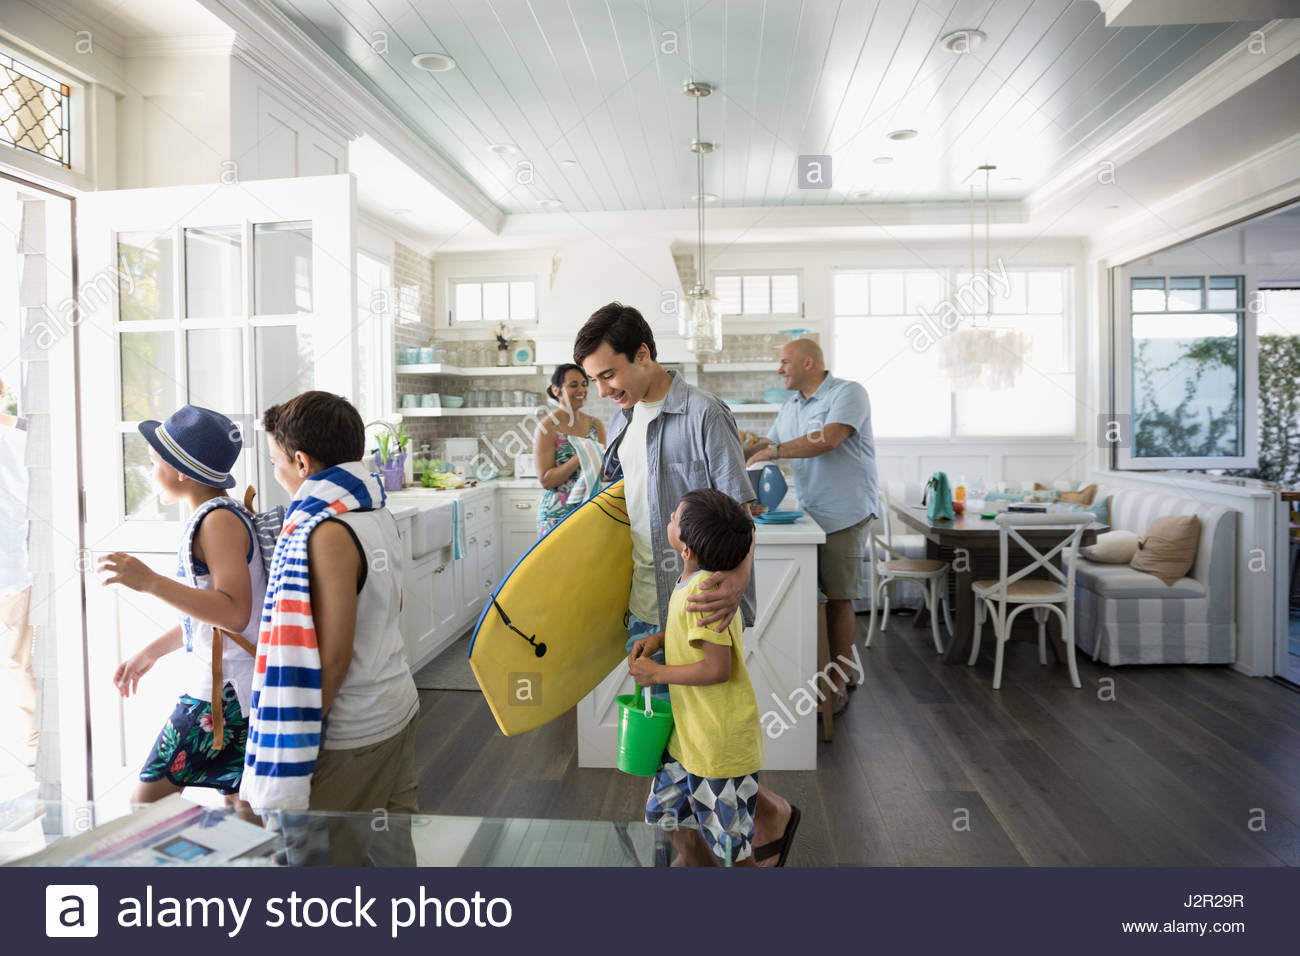 Family with body board and beach towel leaving beach house - Stock Image